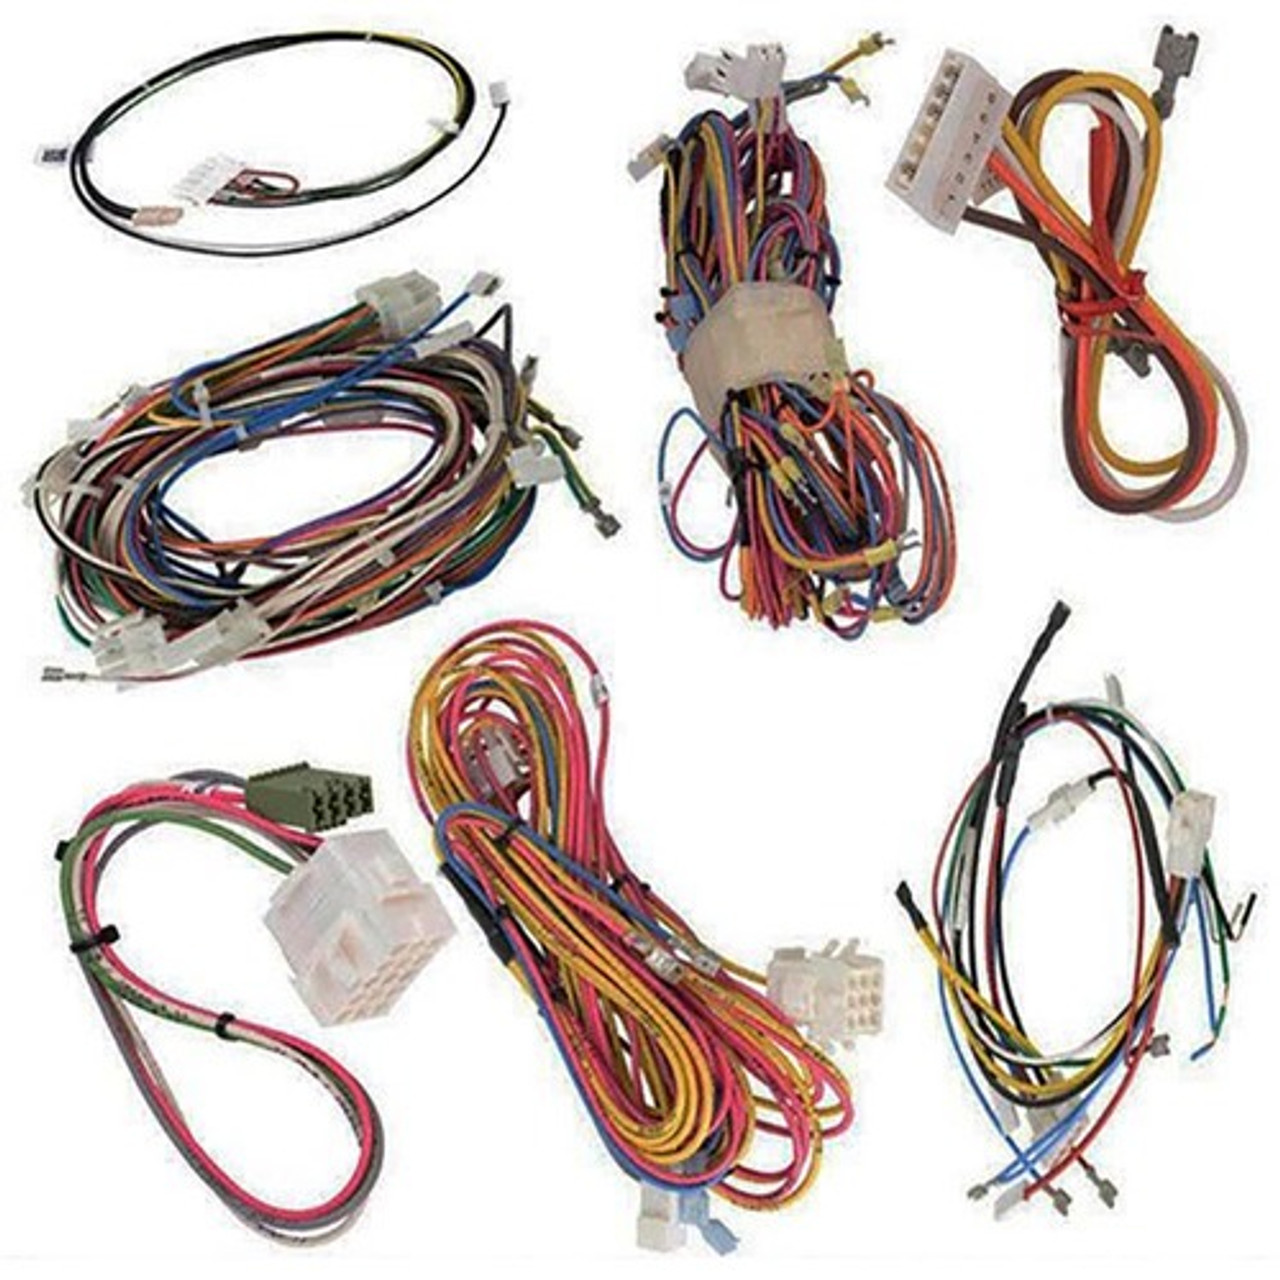 b1378700 low voltage wiring harness